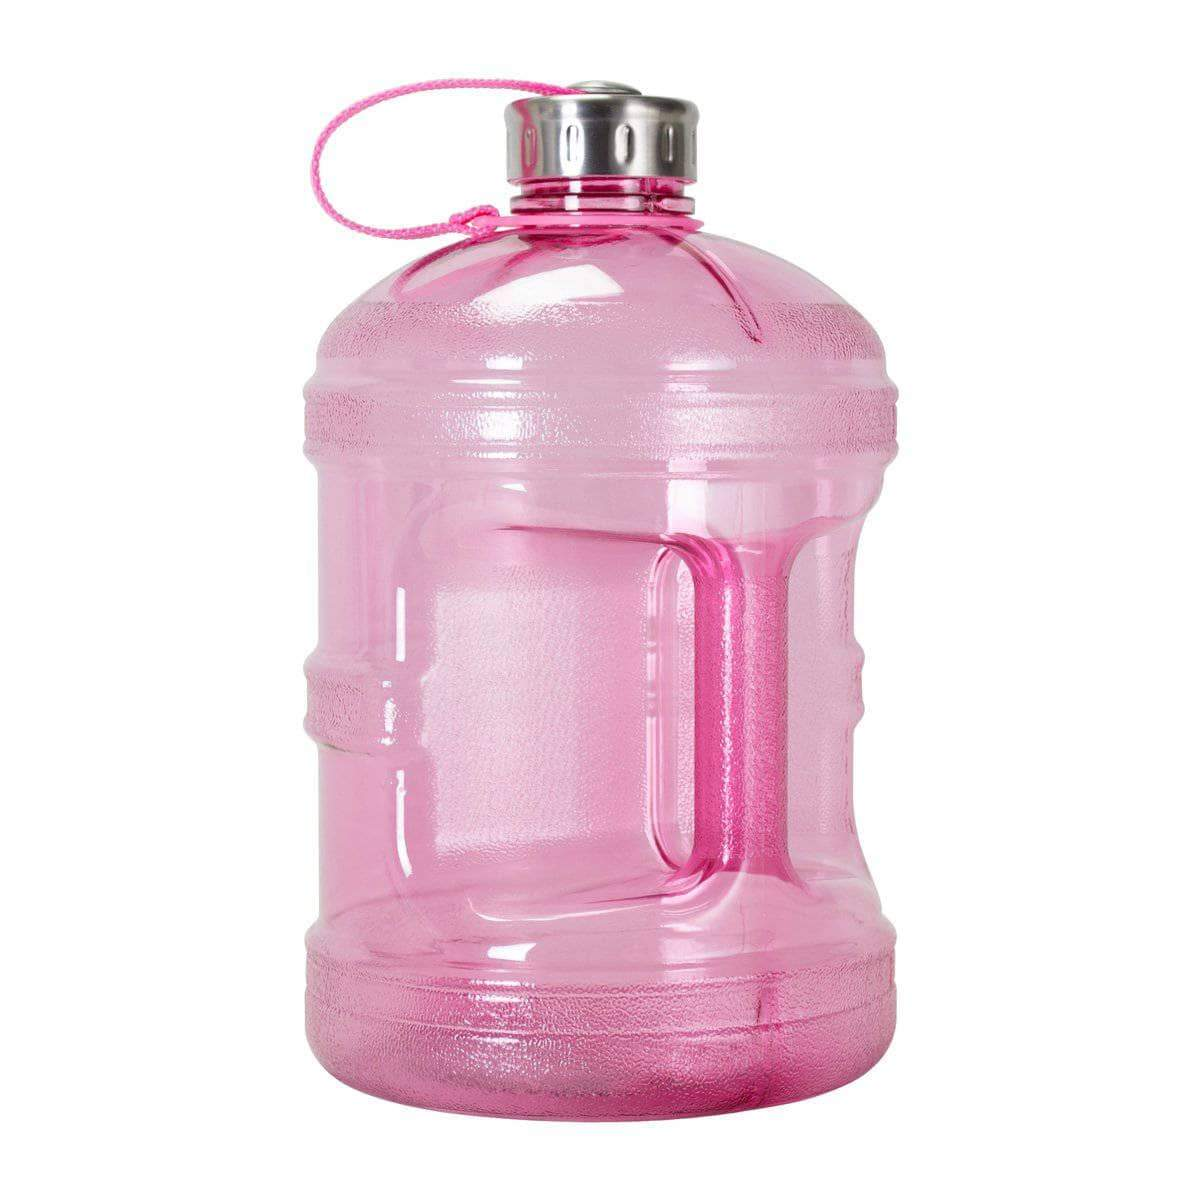 GEO Bottles Pink 1 Gallon BPA FREE Bottle w/ Stainless Steel Cap